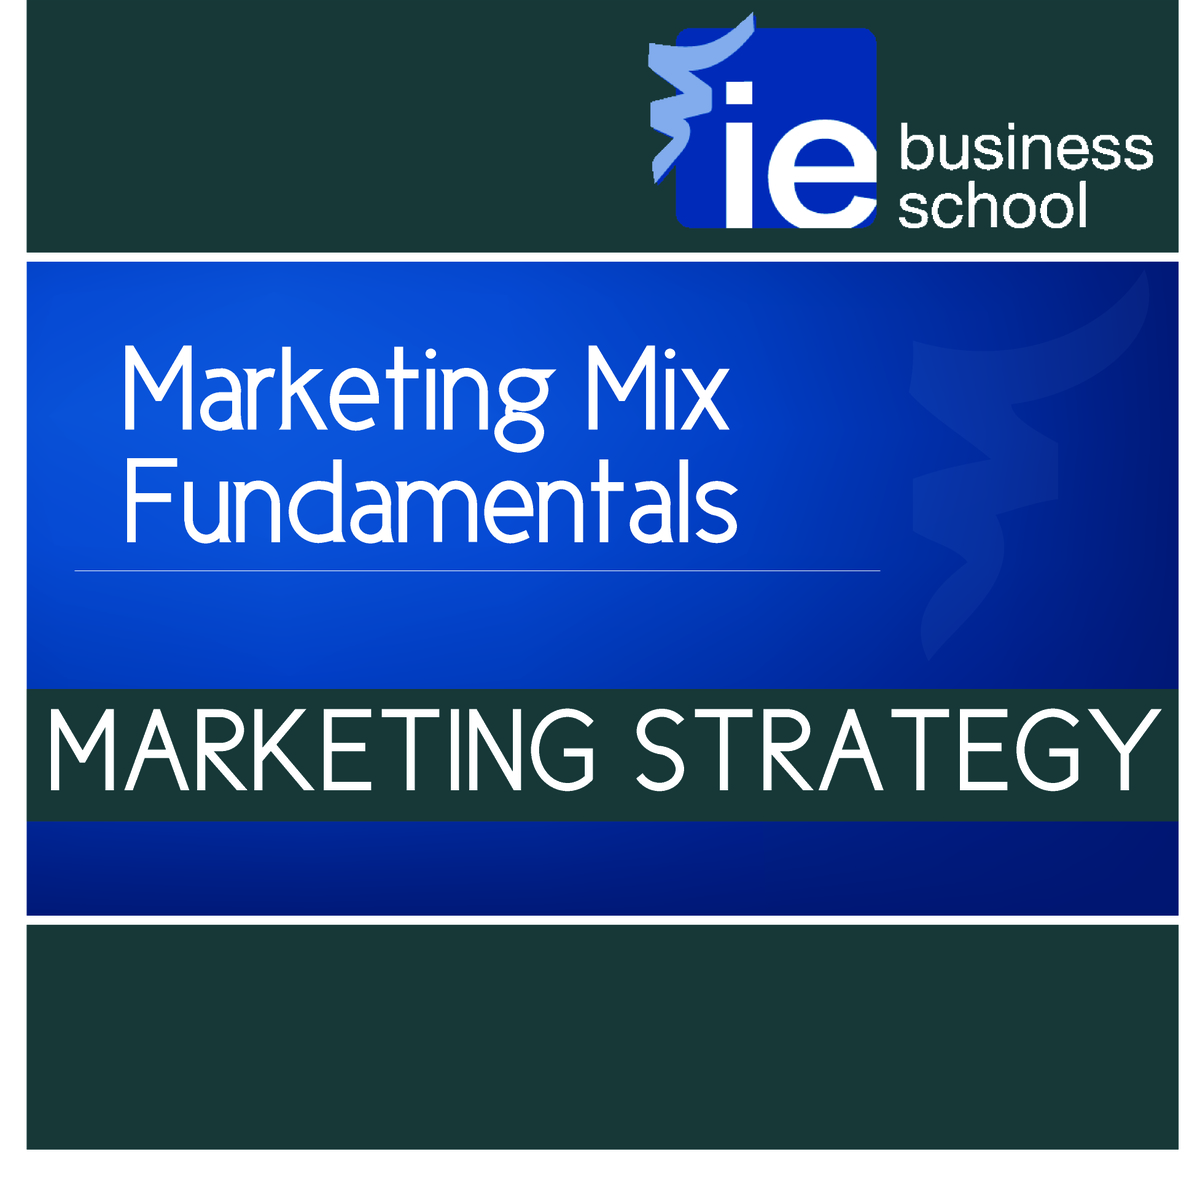 marketing mix coursework The email marketing course offered by the dma includes advanced or fundamental email marketing learn how to use email marketing from industry experts at the dma.